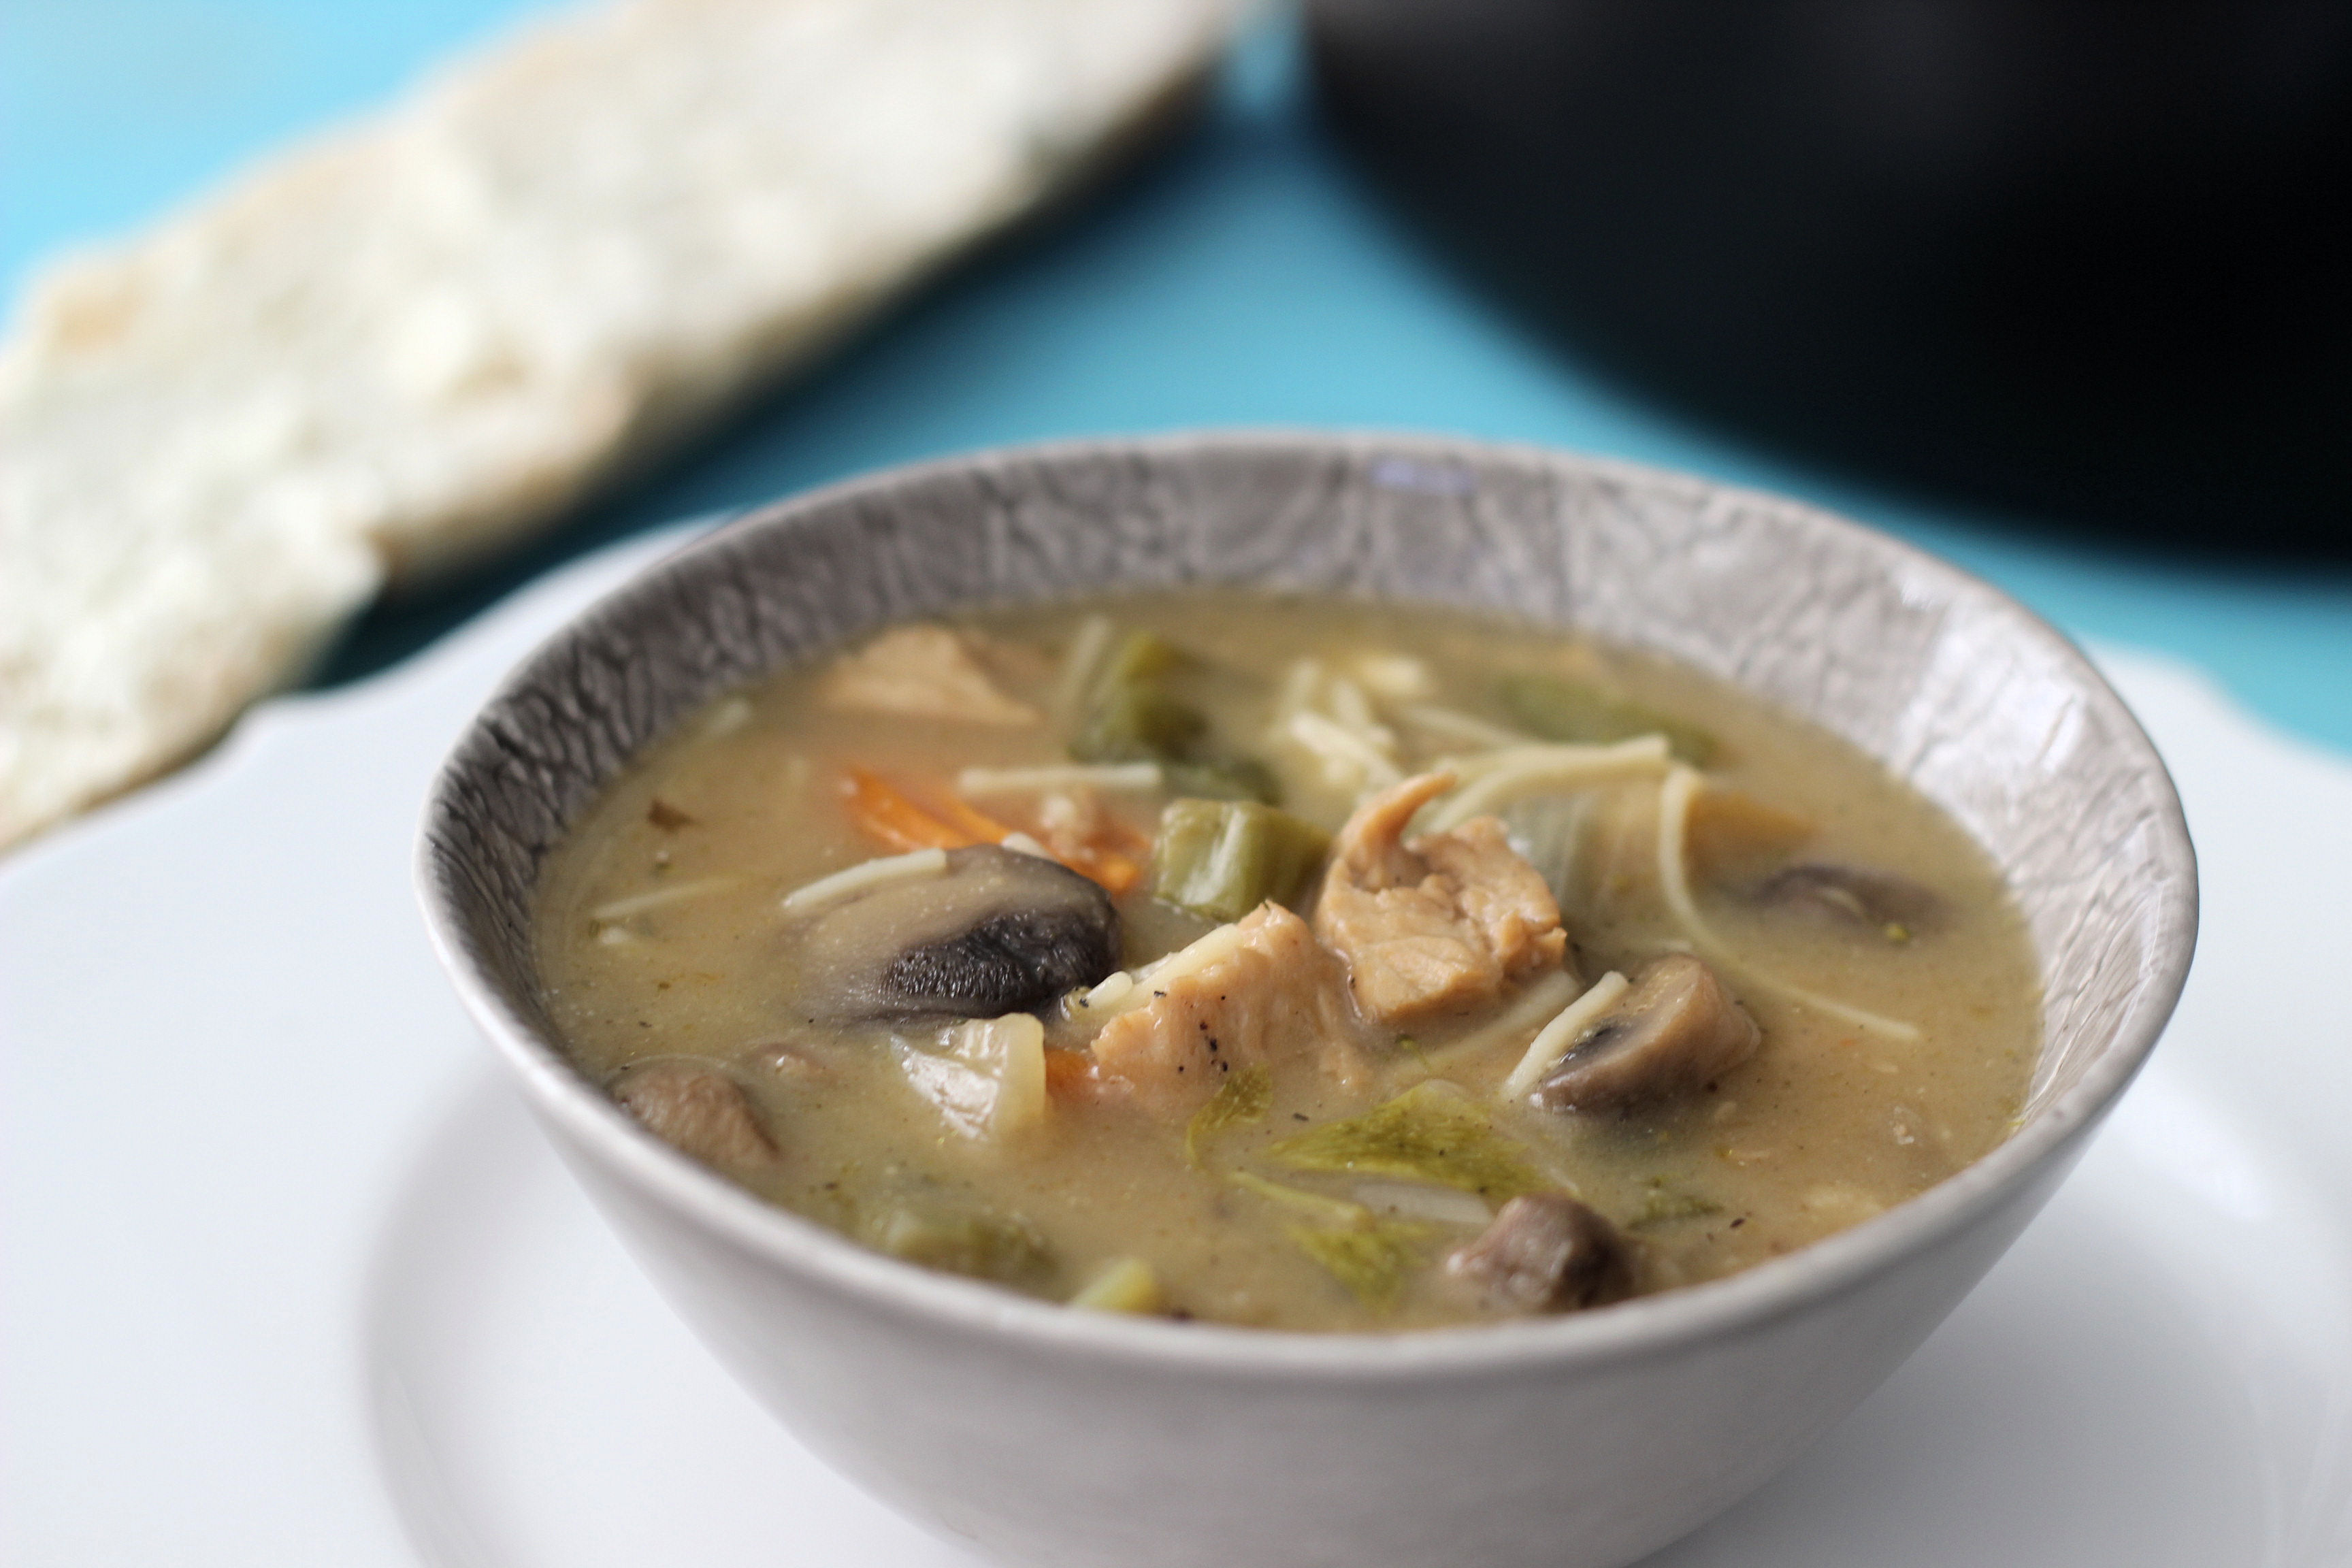 savory-gluten-free-chicken-noodle-soup